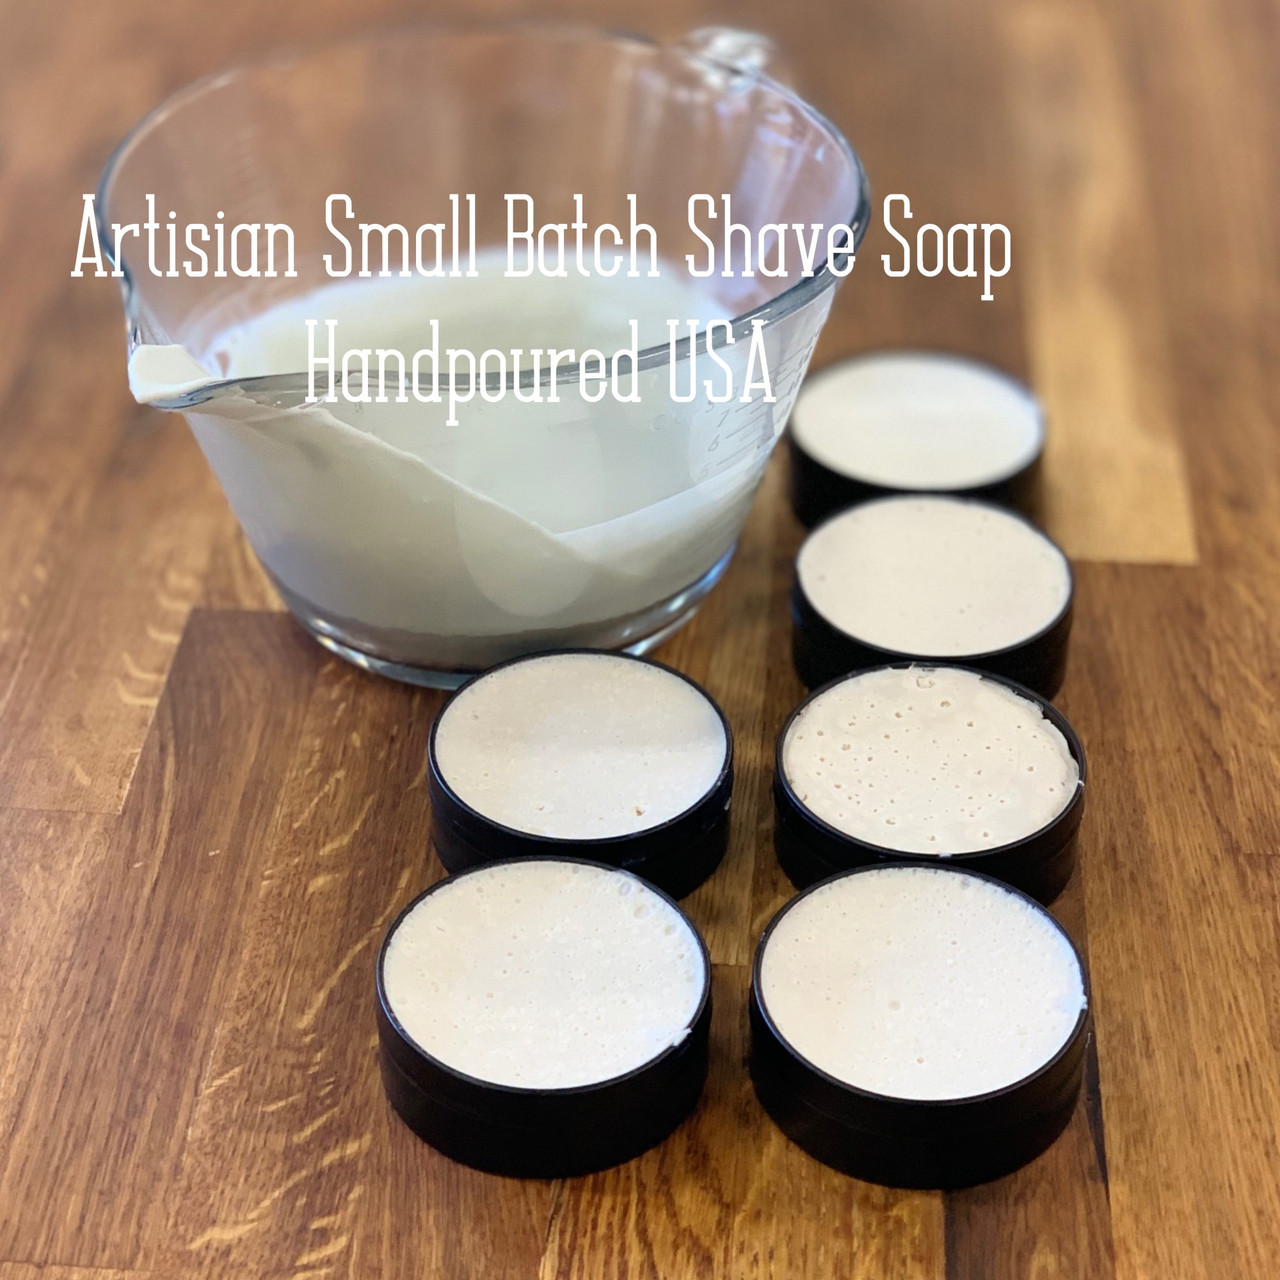 Mountain Man Artisian Small Batch Shave Soap for a Naturally Better Shave Experience